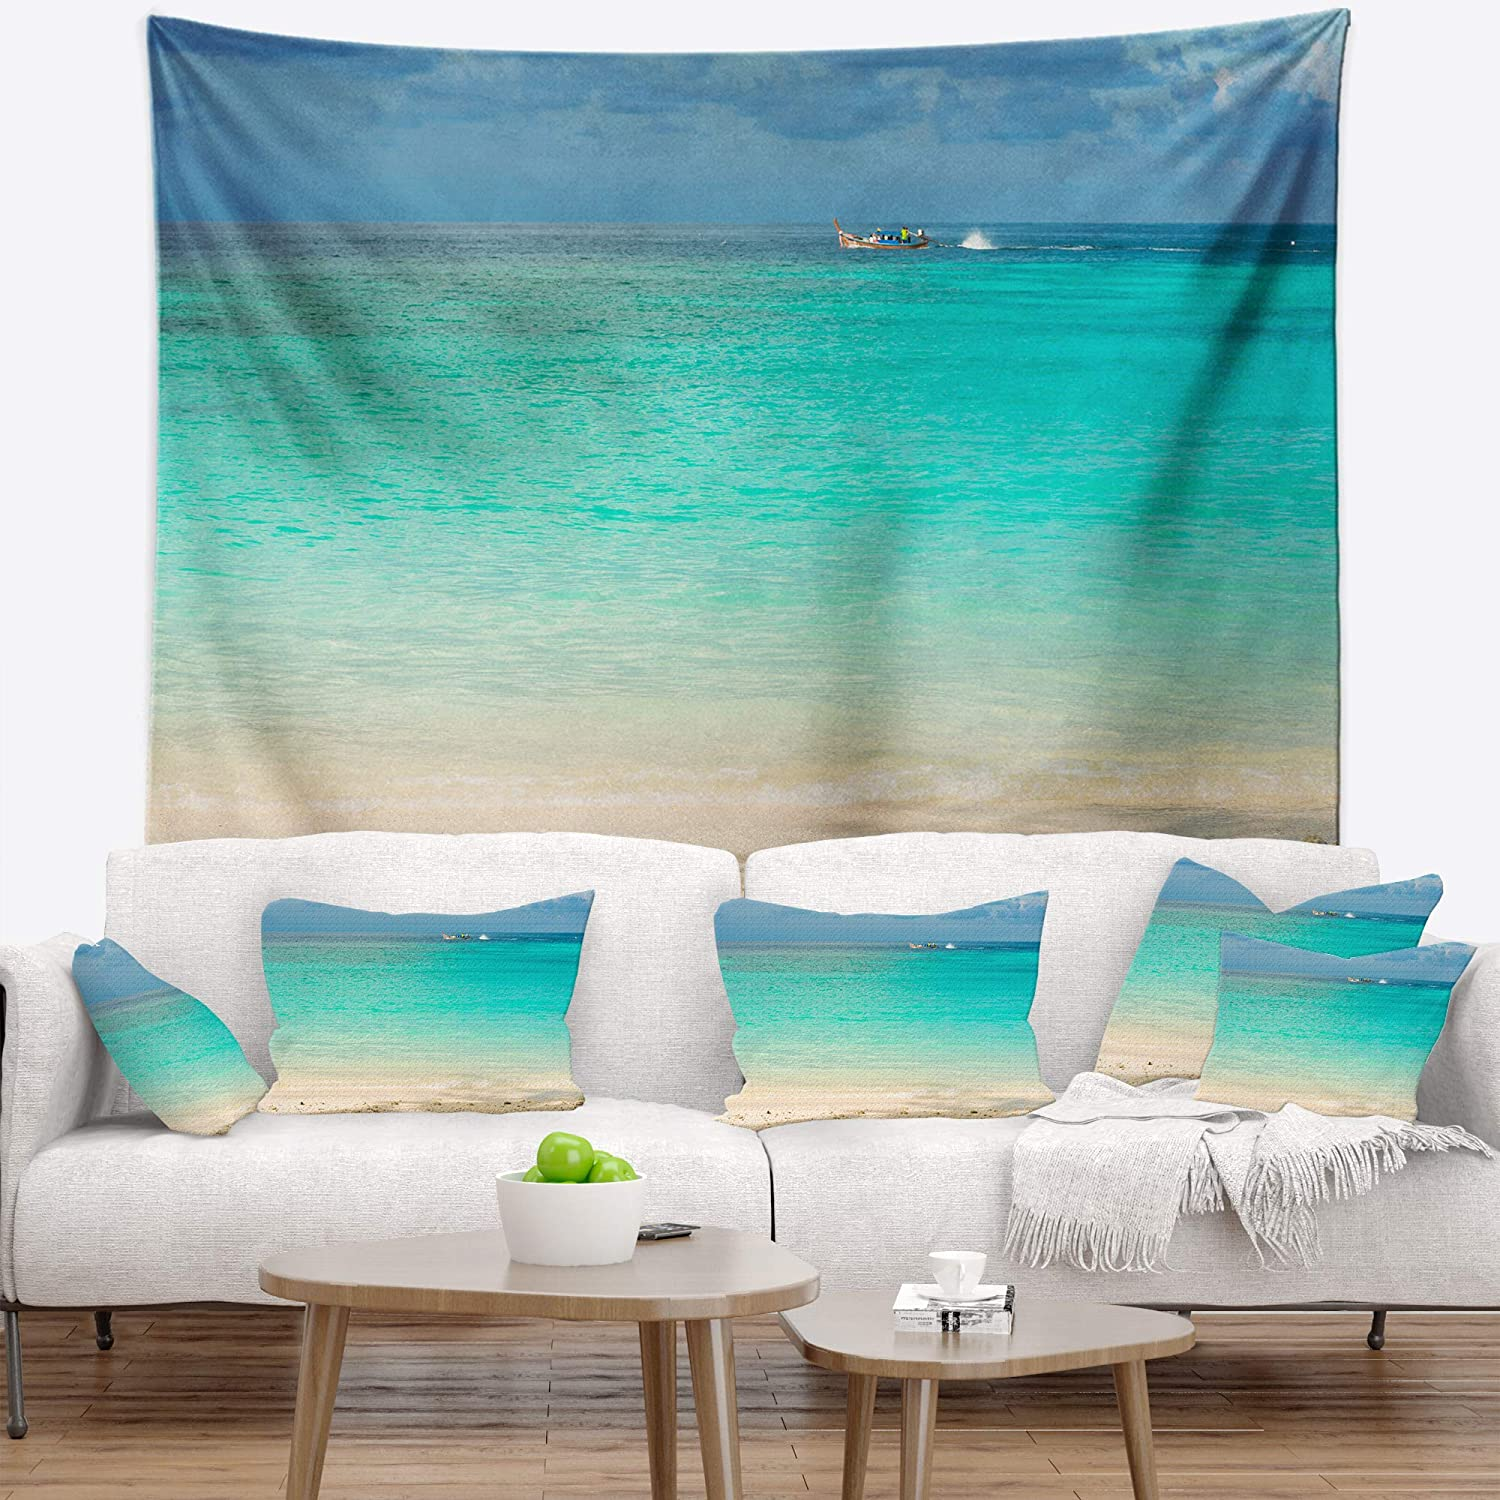 x 68 in 80 in Created On Lightweight Polyester Fabric Designart TAP11466-80-68  Tropical Andaman Sea with Blue Sky Modern Seascape Blanket D/écor Art for Home and Office Wall Tapestry x Large